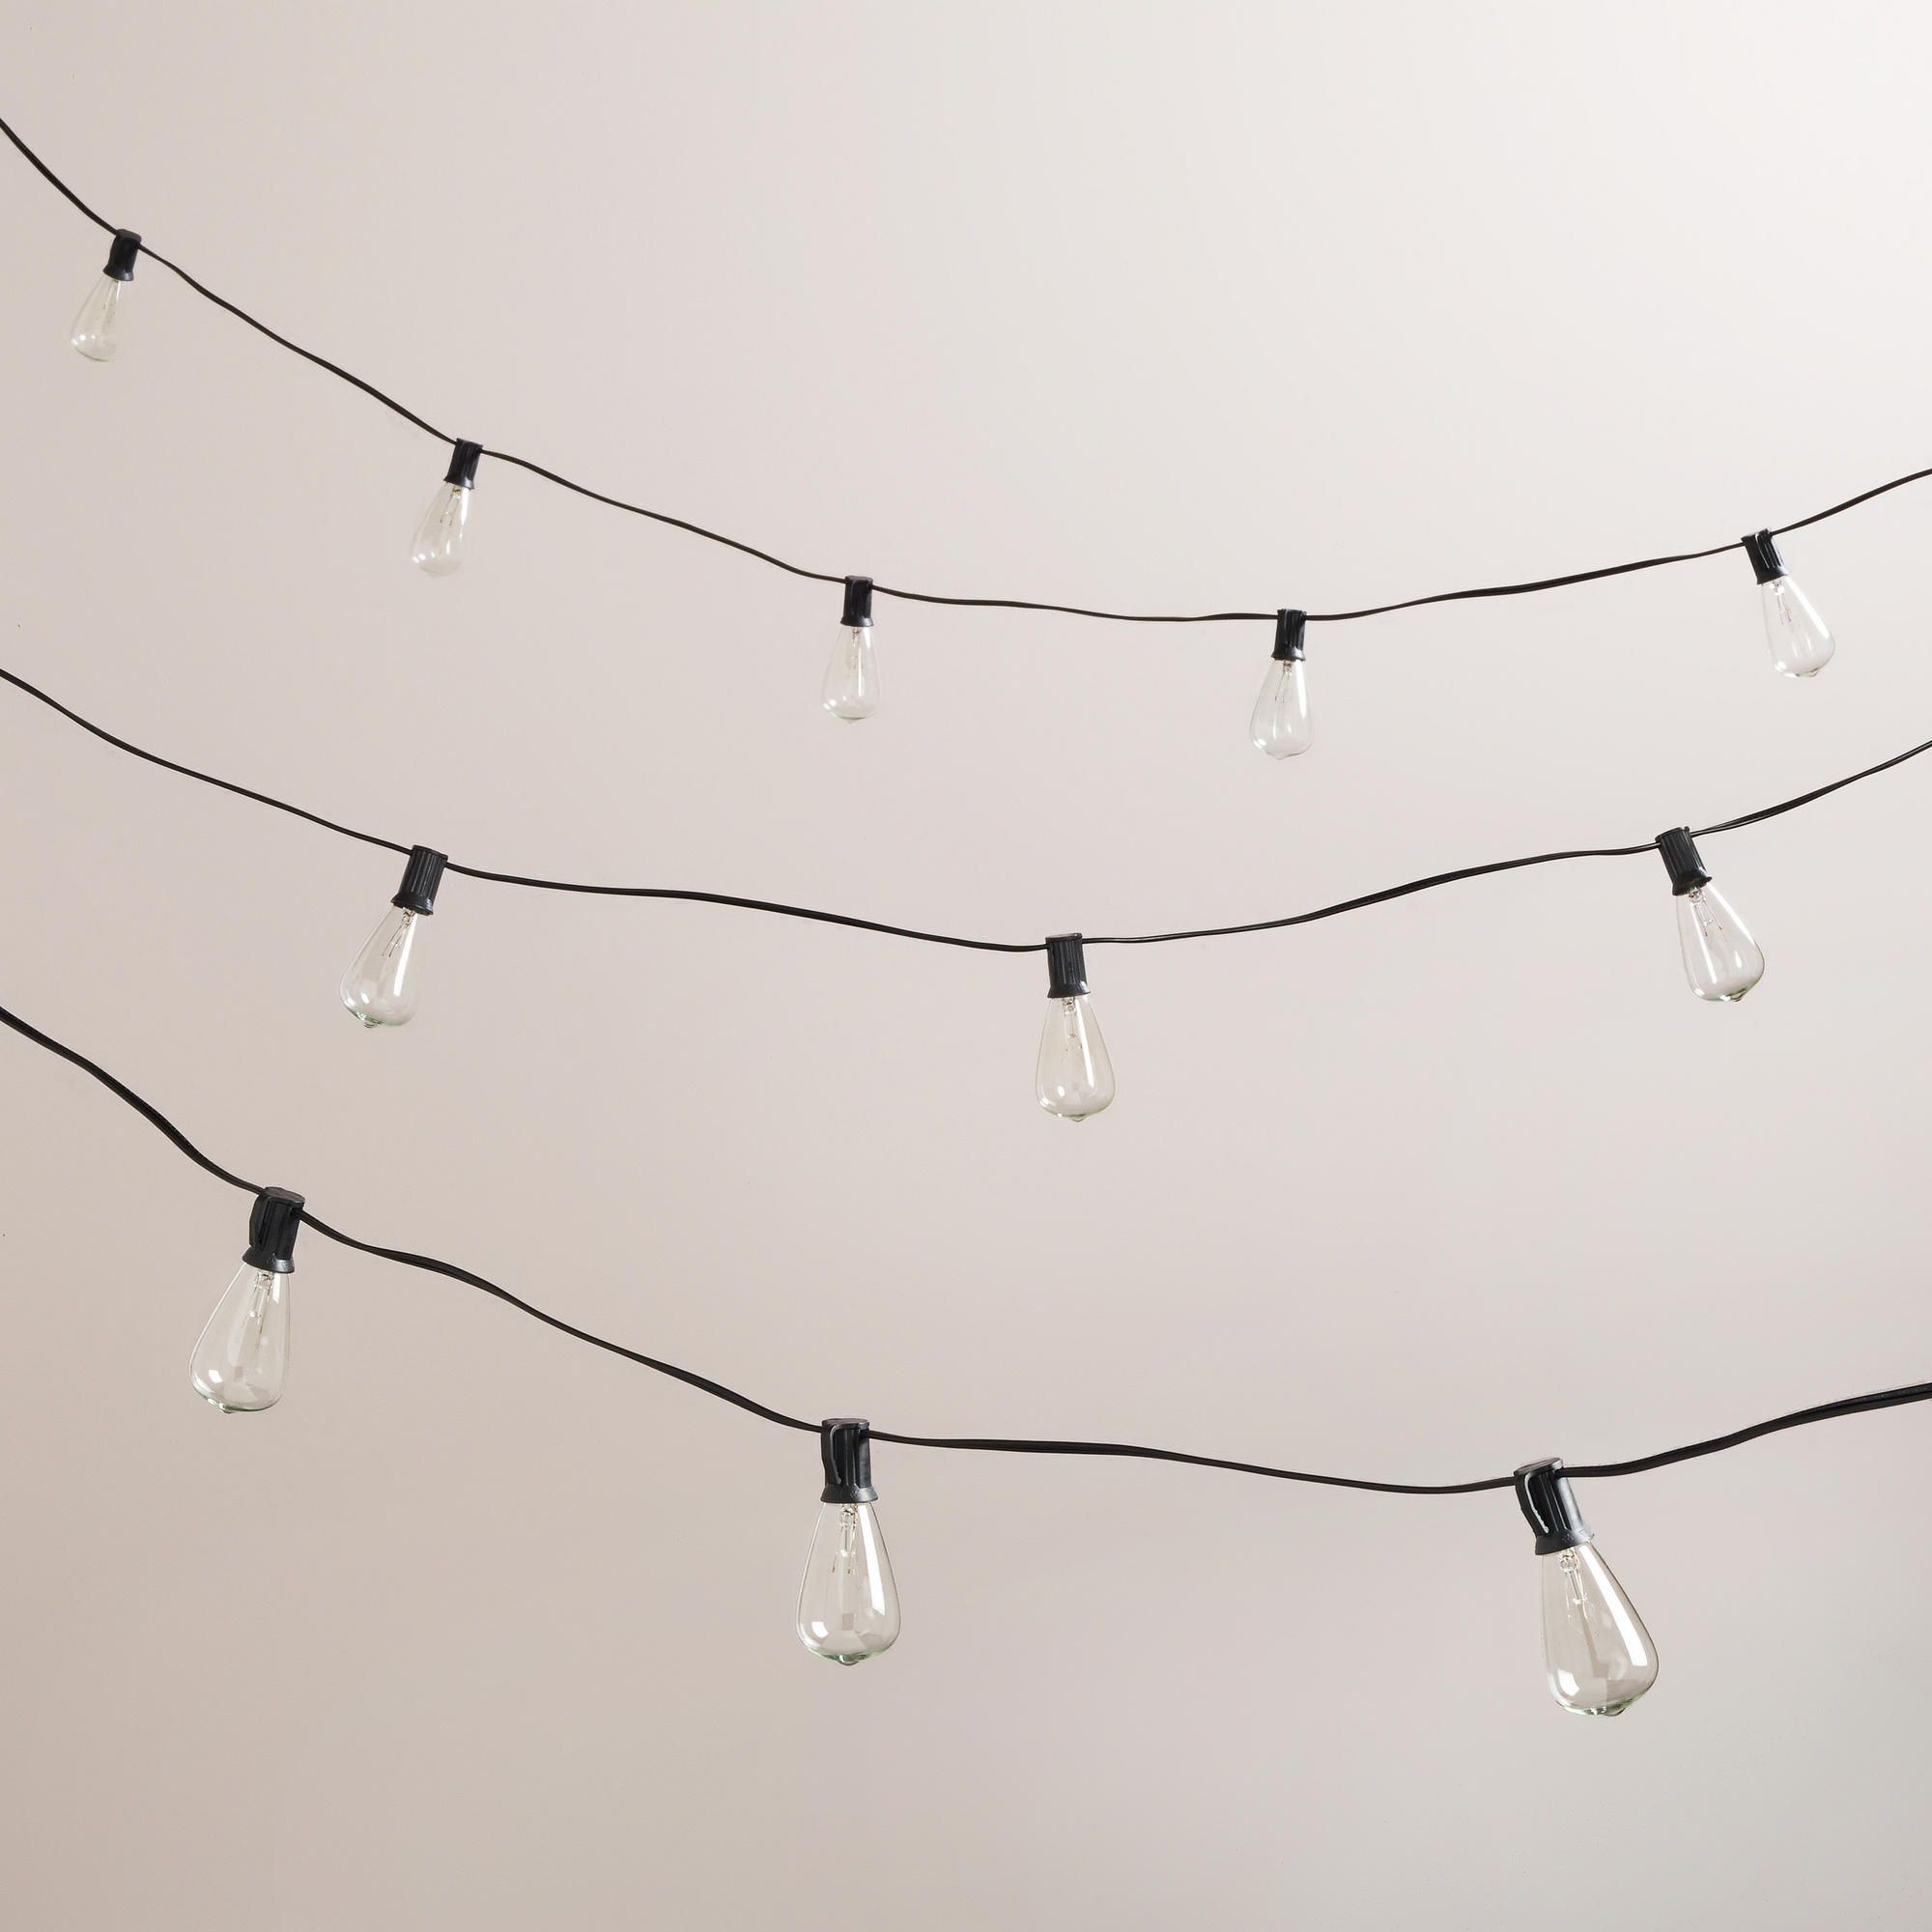 EdisonStyle String Lights World Market For my nest Pinterest